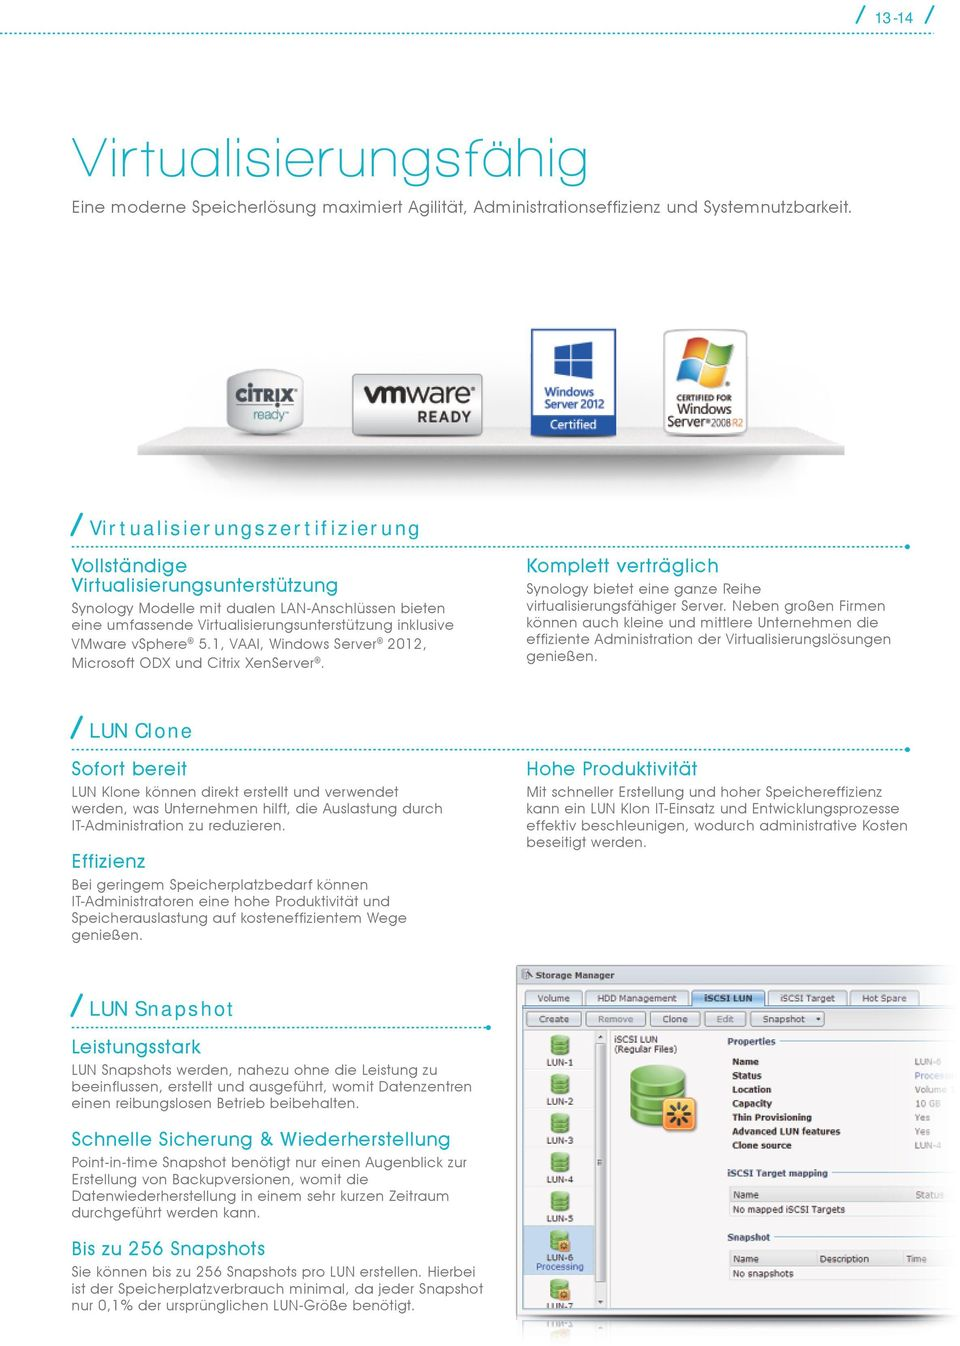 1, VAAI, Windows Server 2012, Microsoft ODX und Citrix XenServer.